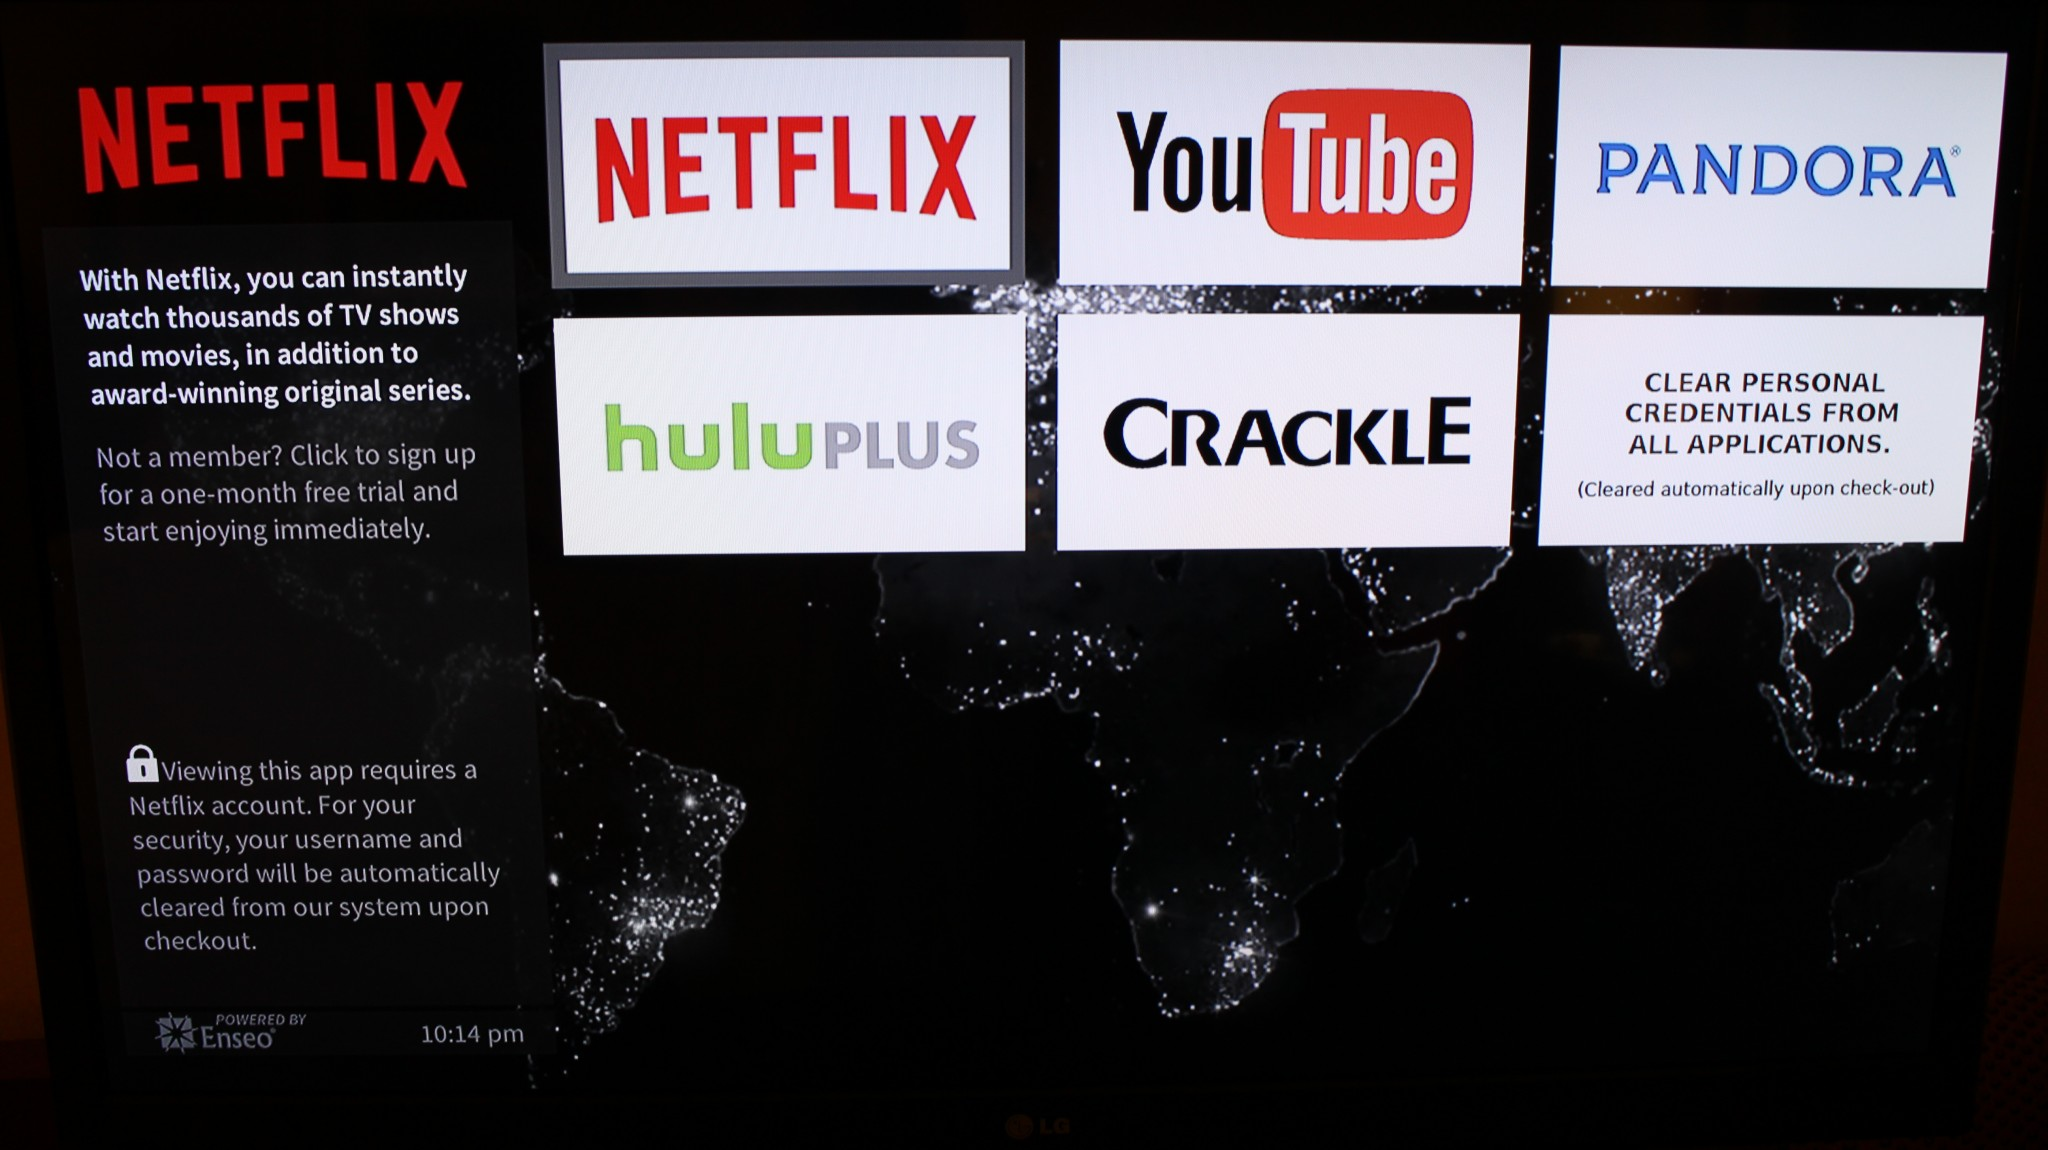 Marriott Hotels Add Netflix, Hulu Plus, Crackle, and YouTube to